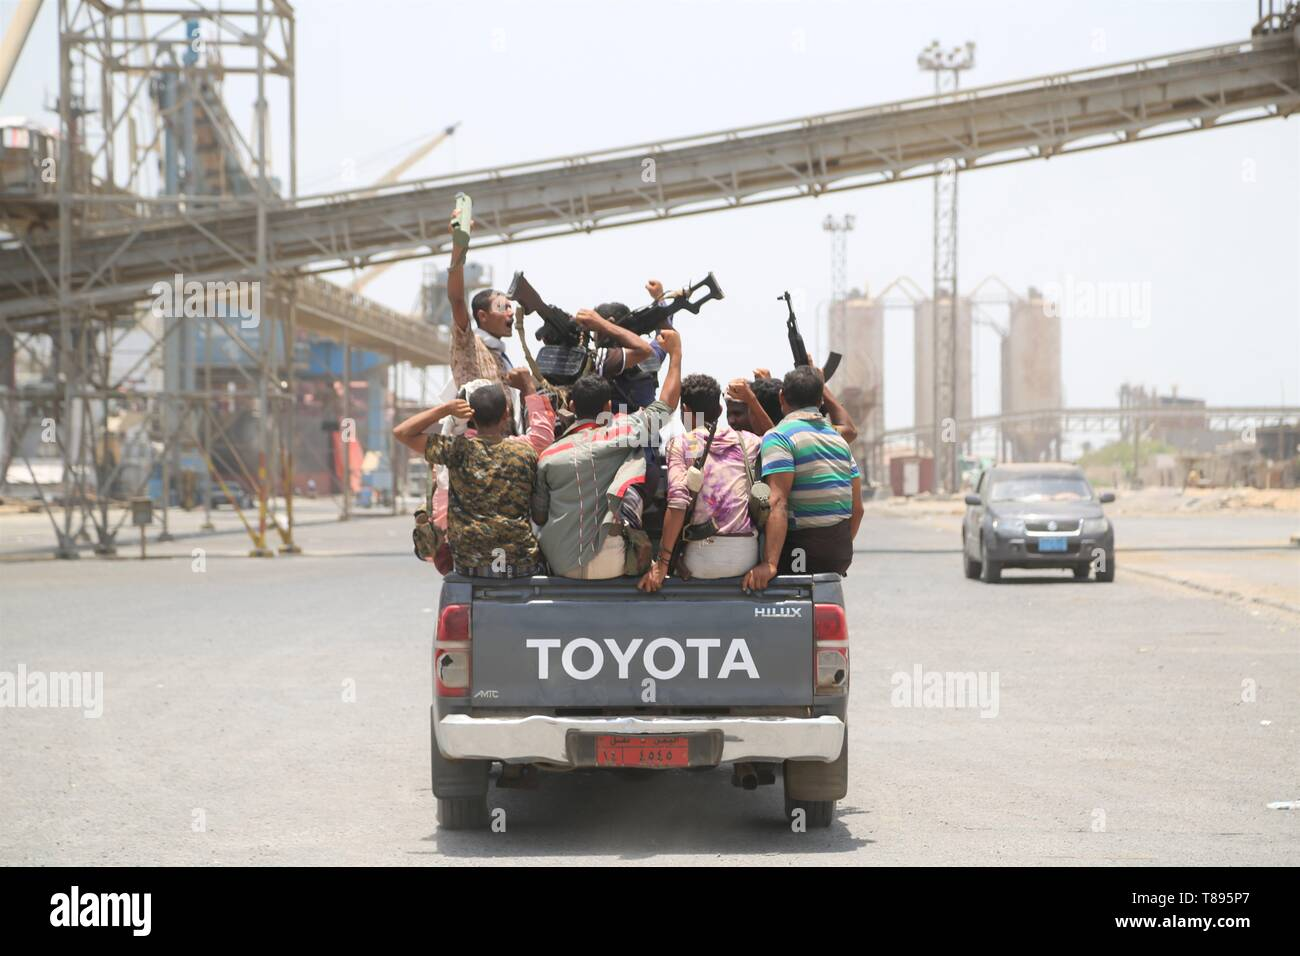 (190511) -- HODEIDAH (YEMEN), May 11, 2019 (Xinhua) -- Houthi members ride a truck during their withdrawal at Salif port in Hodeidah, Yemen, on May 11, 2019. Yemen's Houthi rebels began on Saturday withdrawal from two ports of Hodeidah Province, eyewitnesses said. (Xinhua) Stock Photo